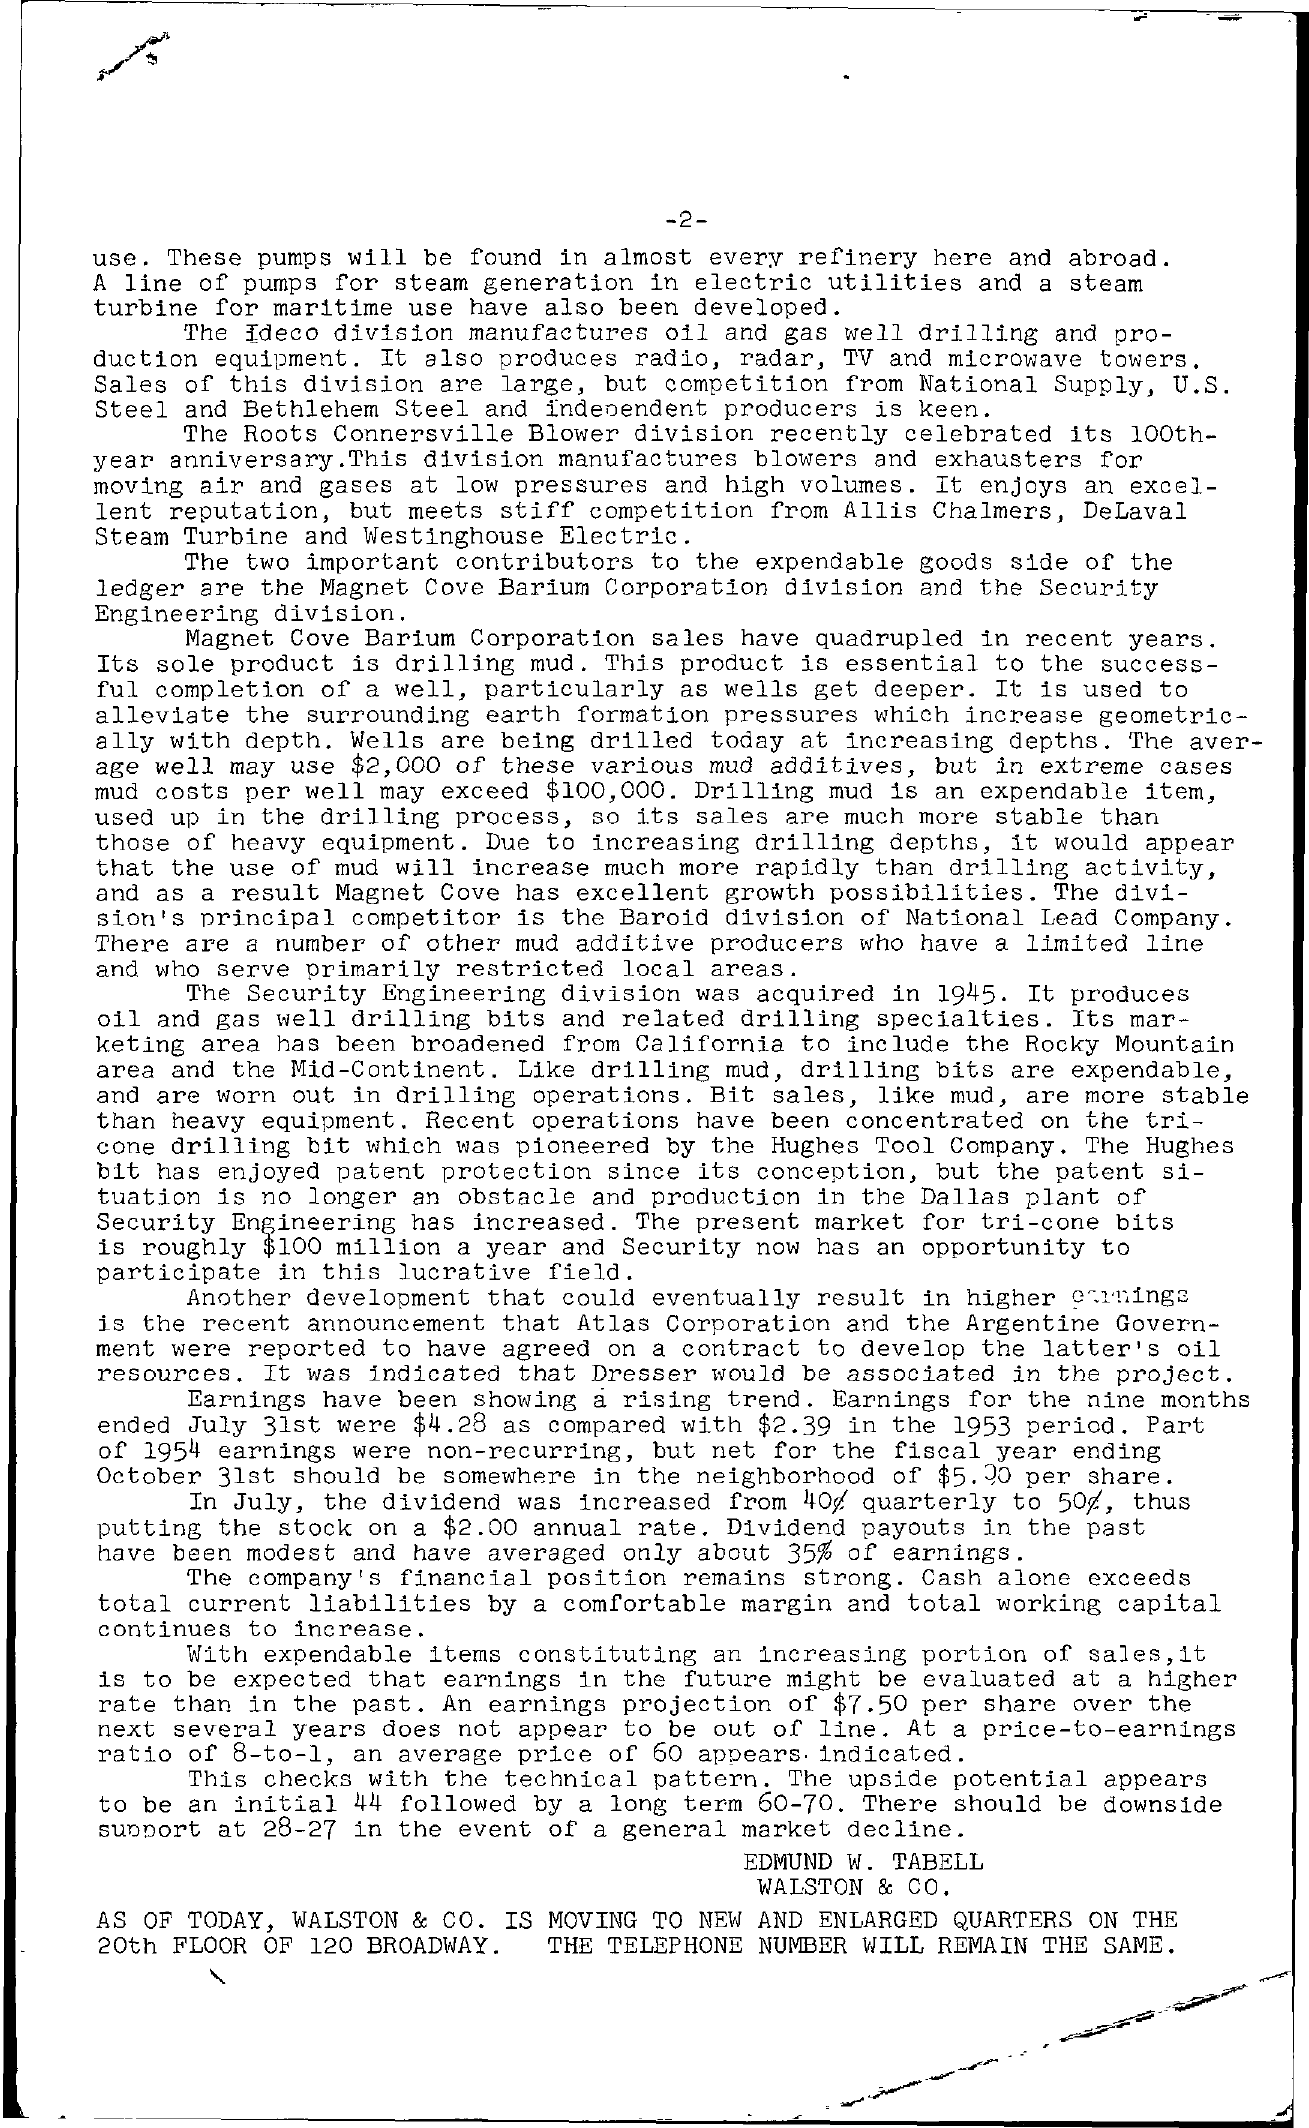 Tabell's Market Letter - September 24, 1954 page 2